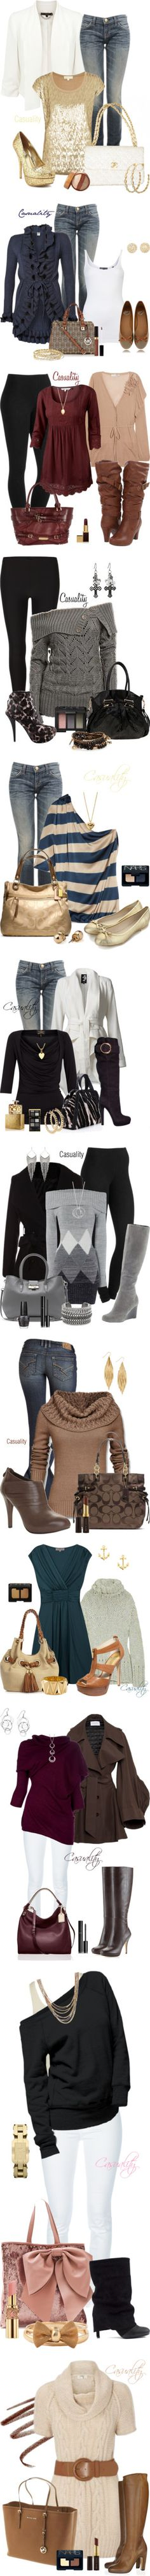 """""""Untitled"""" by casuality on Polyvore"""